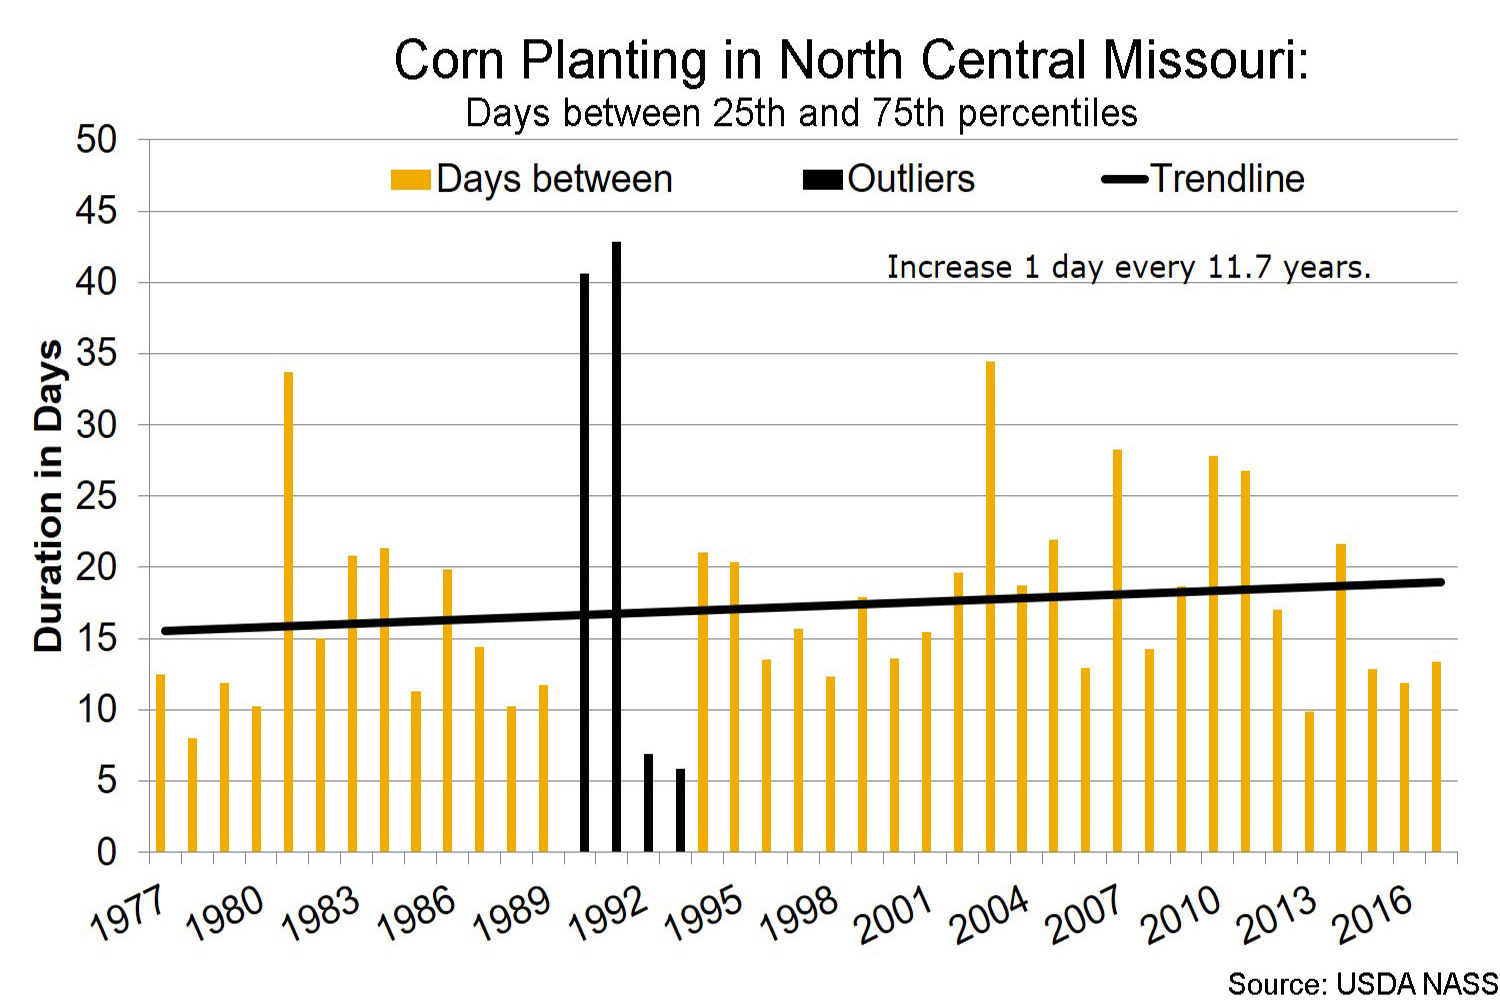 Corn planting in north central Missouri days between 25th and 75th percentiles chart